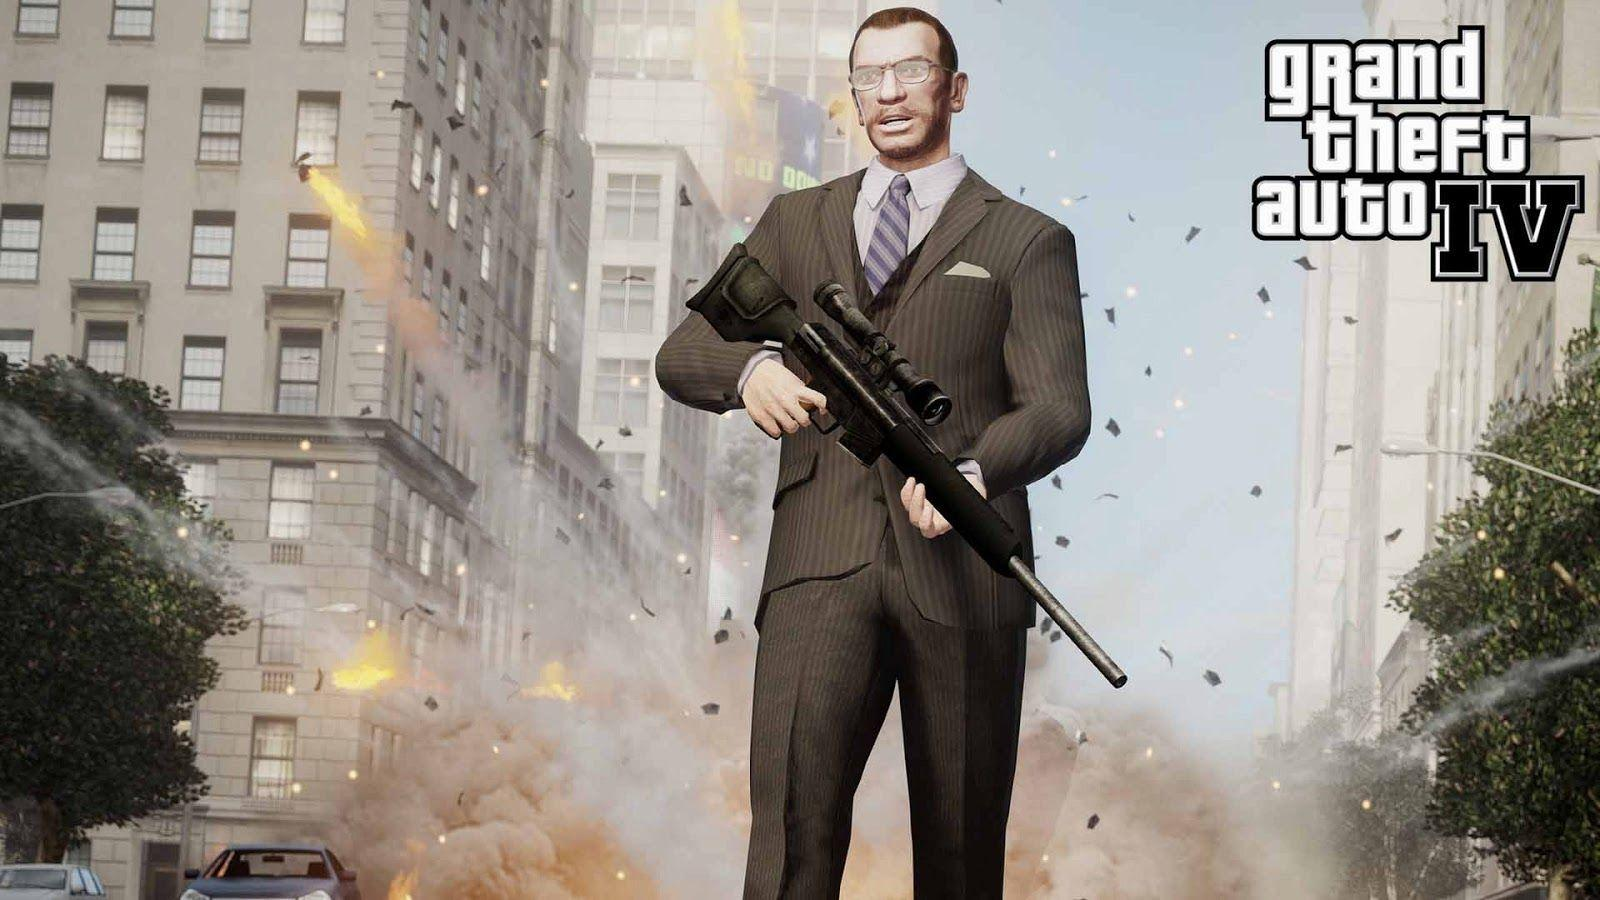 Gta 4 Background Music Download